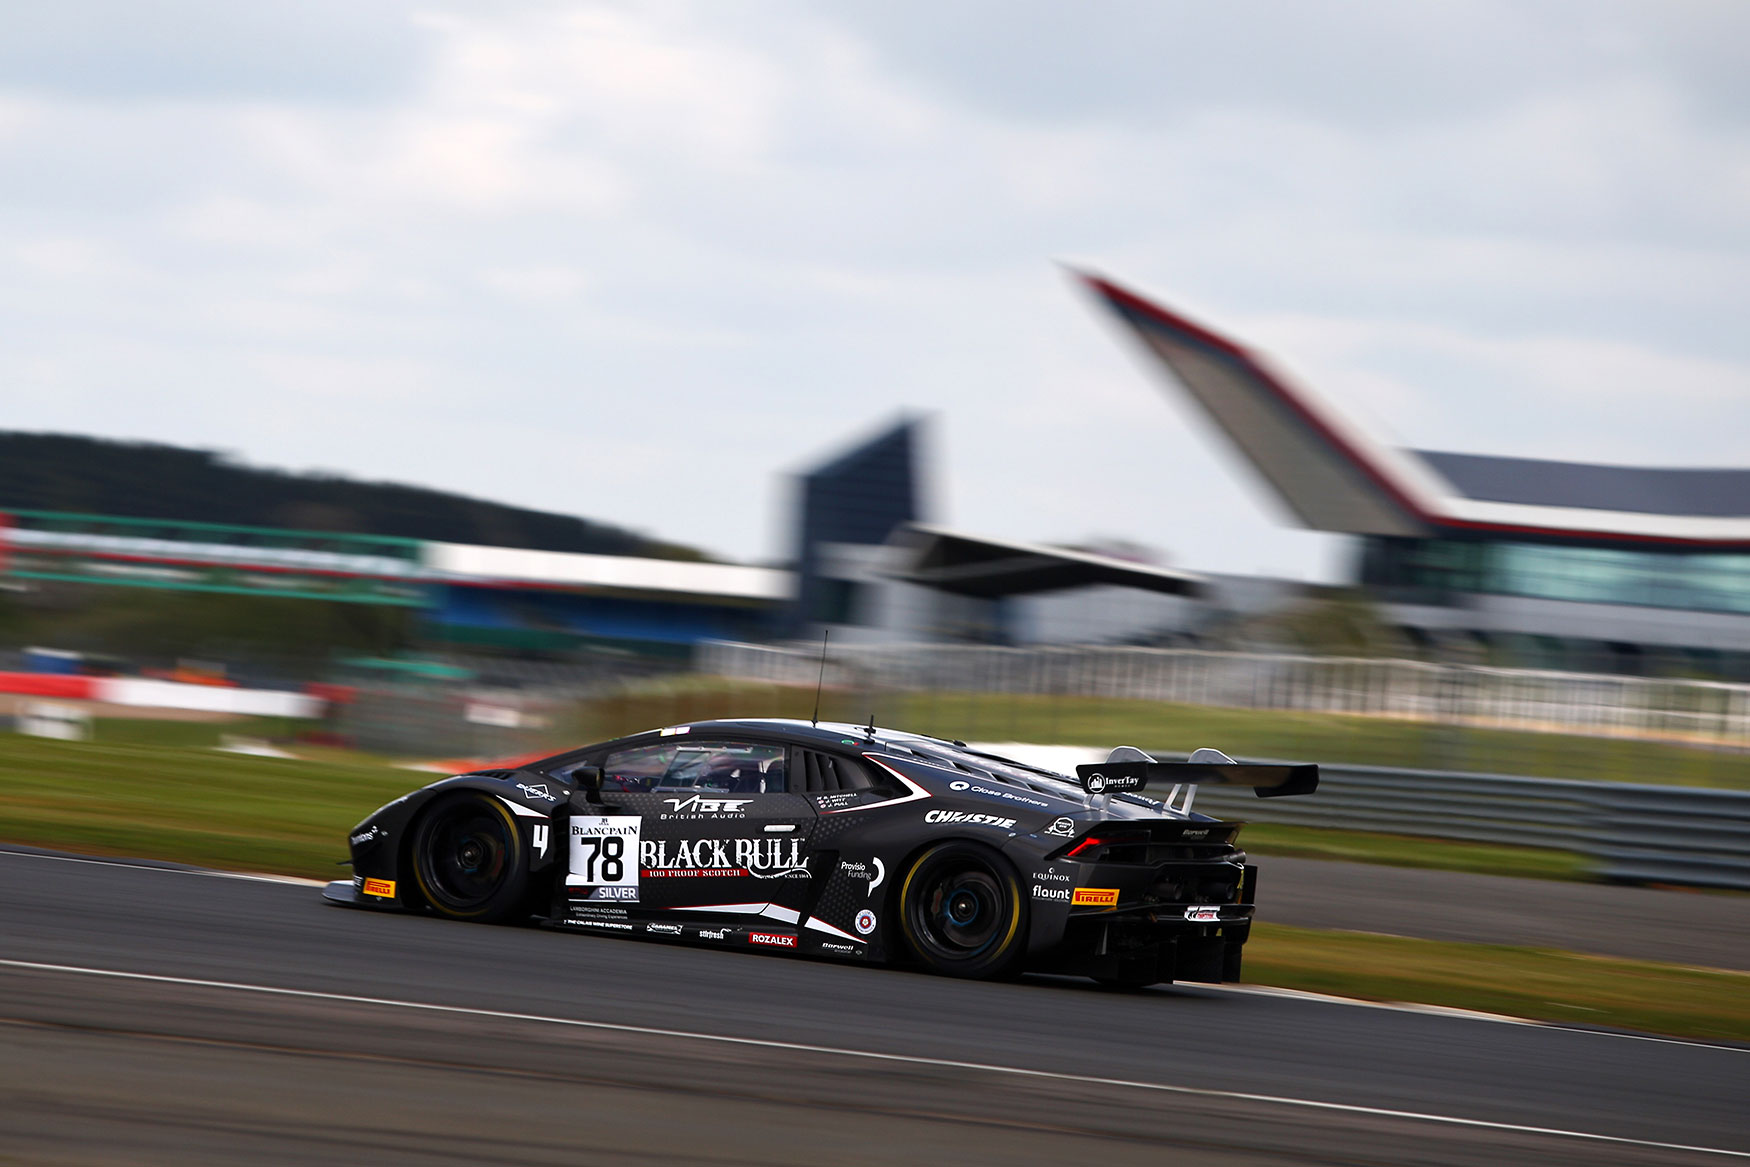 Pull fighting at the front in Blancpain GT Series at